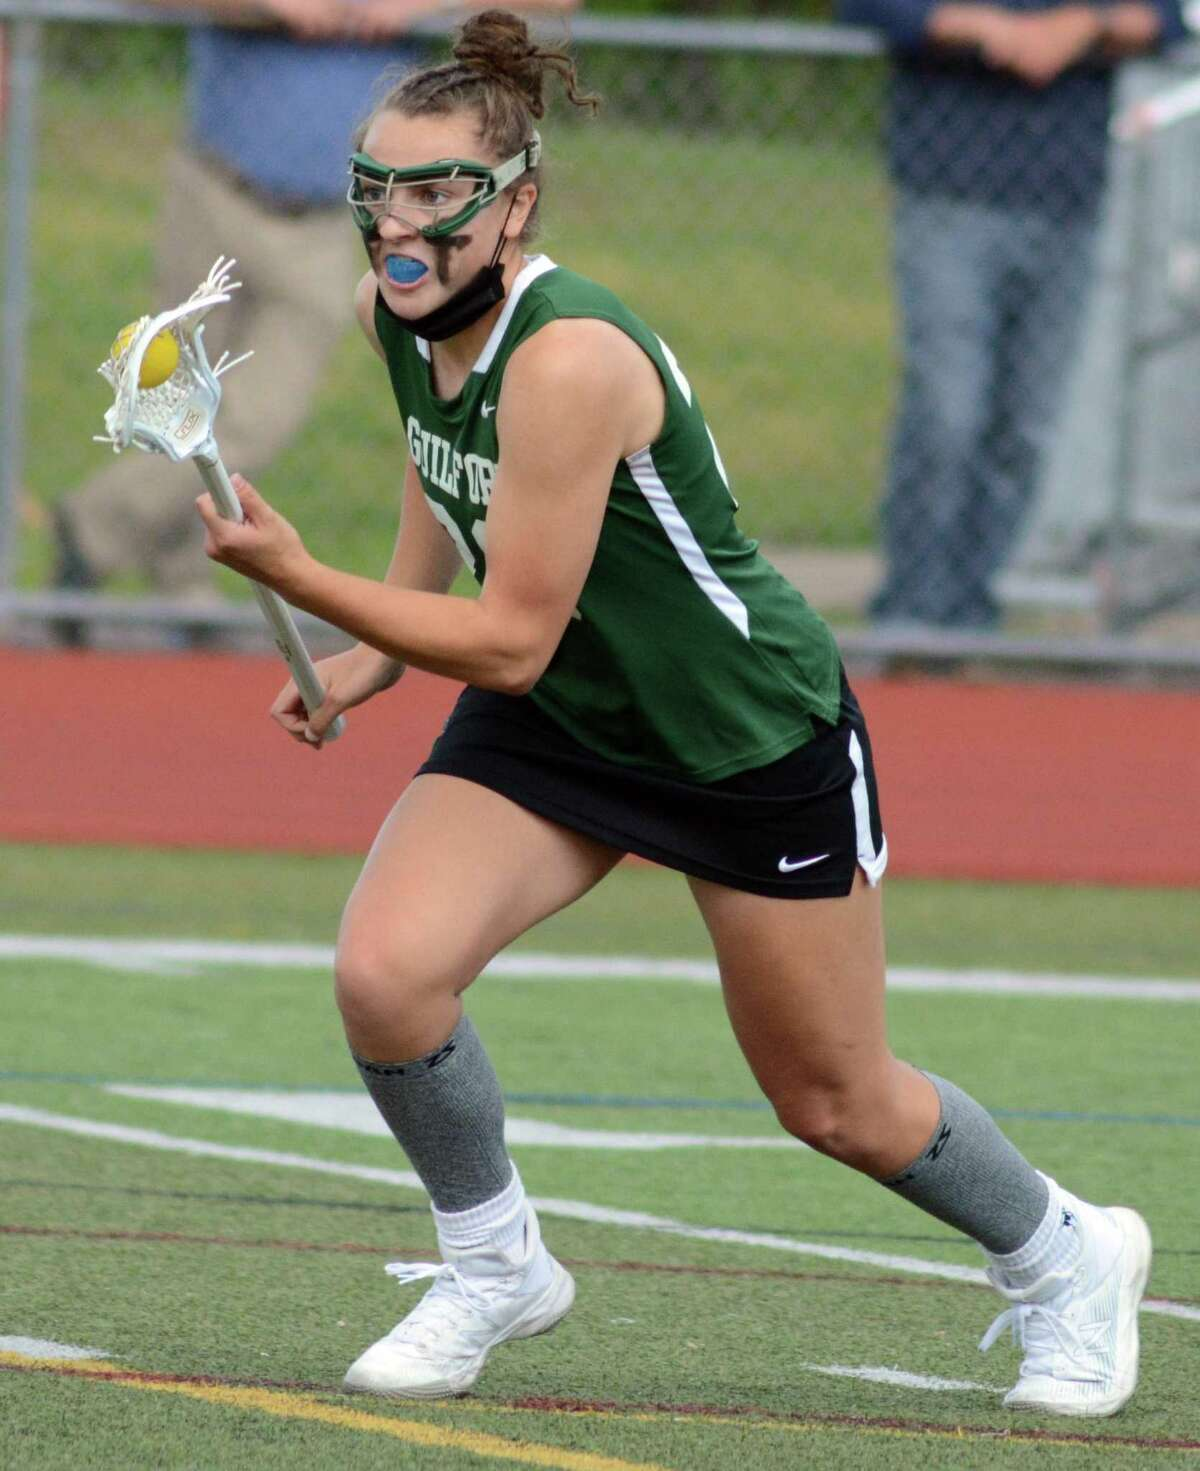 Guilford's Maddie Epke was named the Connecticut Sports Writers' Alliance Female Athlete of the Year.